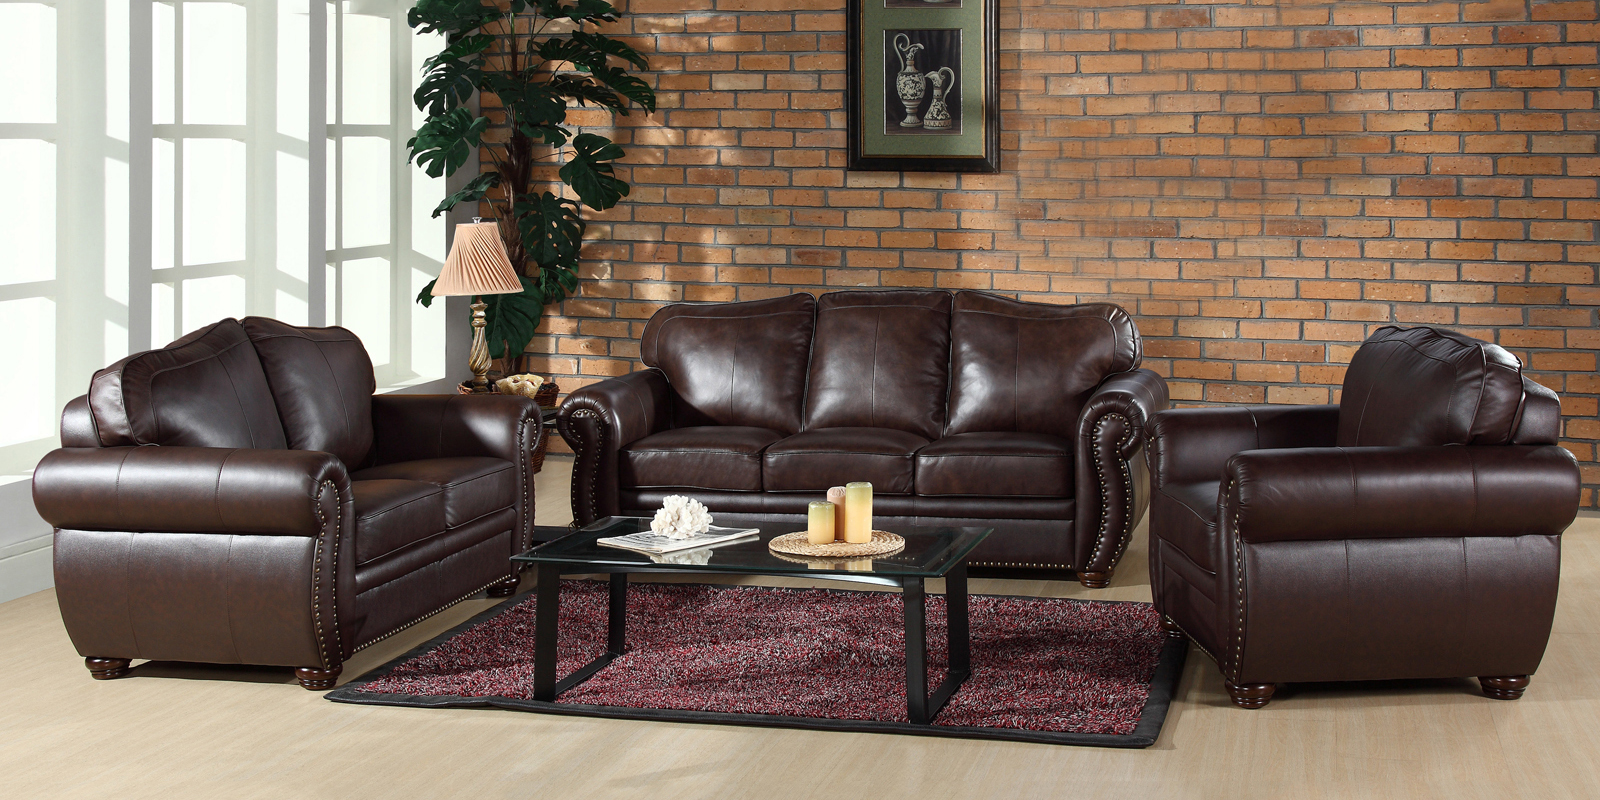 Astonishing Editha Leatherette Sofa Set In Brown Colour Squirreltailoven Fun Painted Chair Ideas Images Squirreltailovenorg